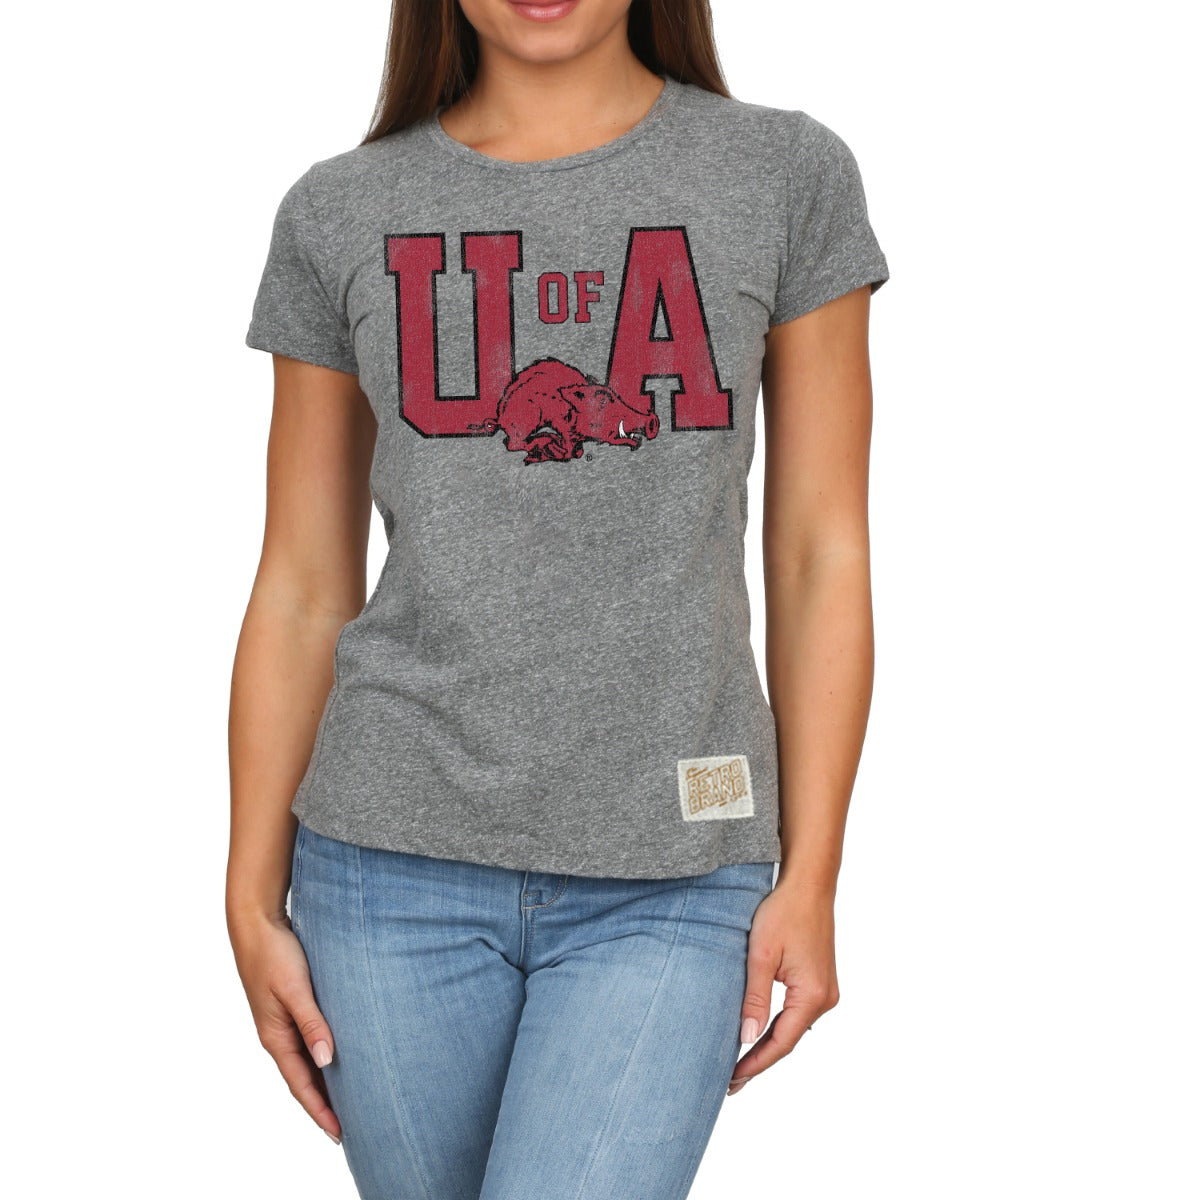 Arkansas Women's Tri Blend Crew Neck Tee